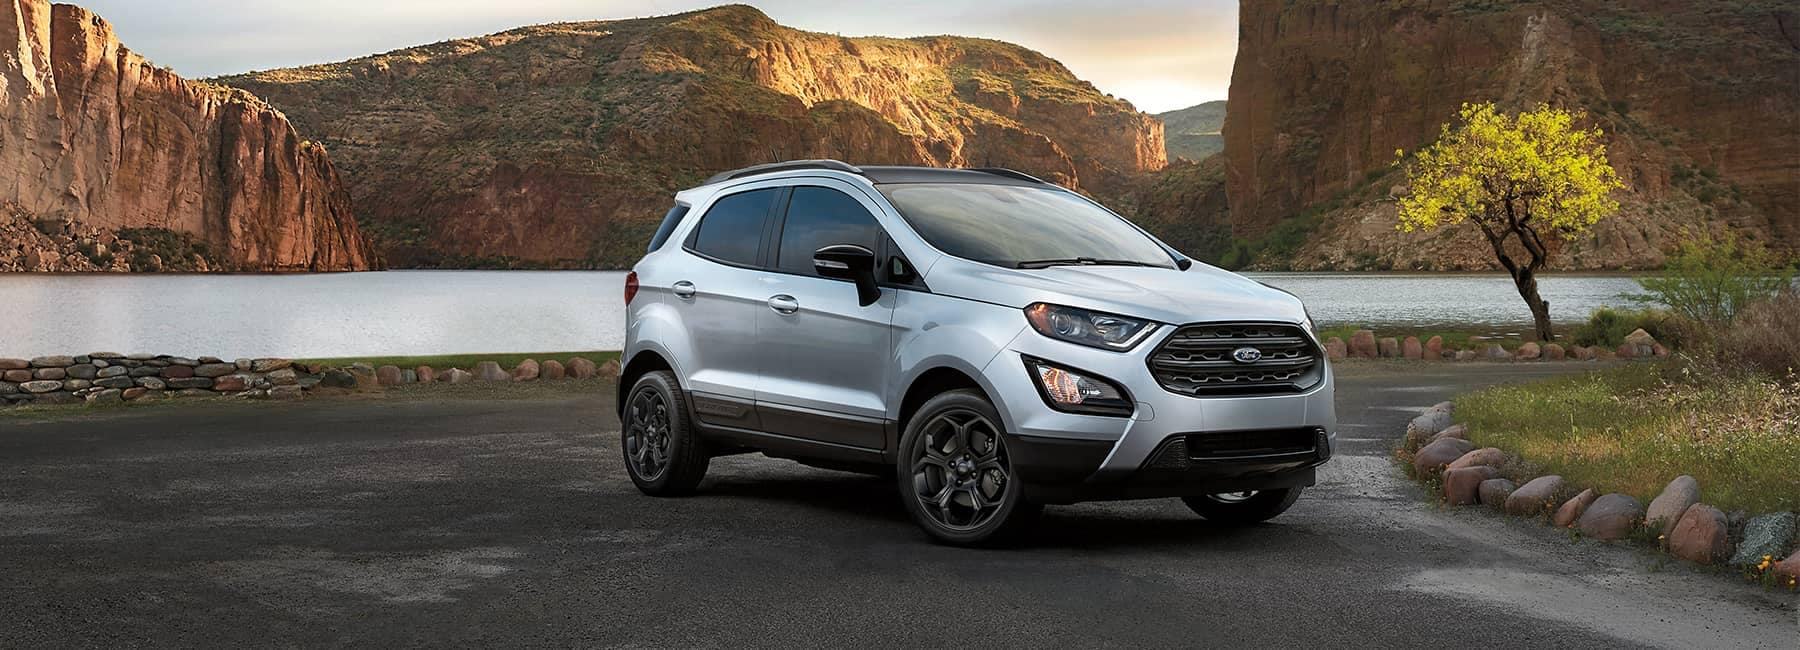 2021 Ford EcoSport parked on a river overlook in a canyon